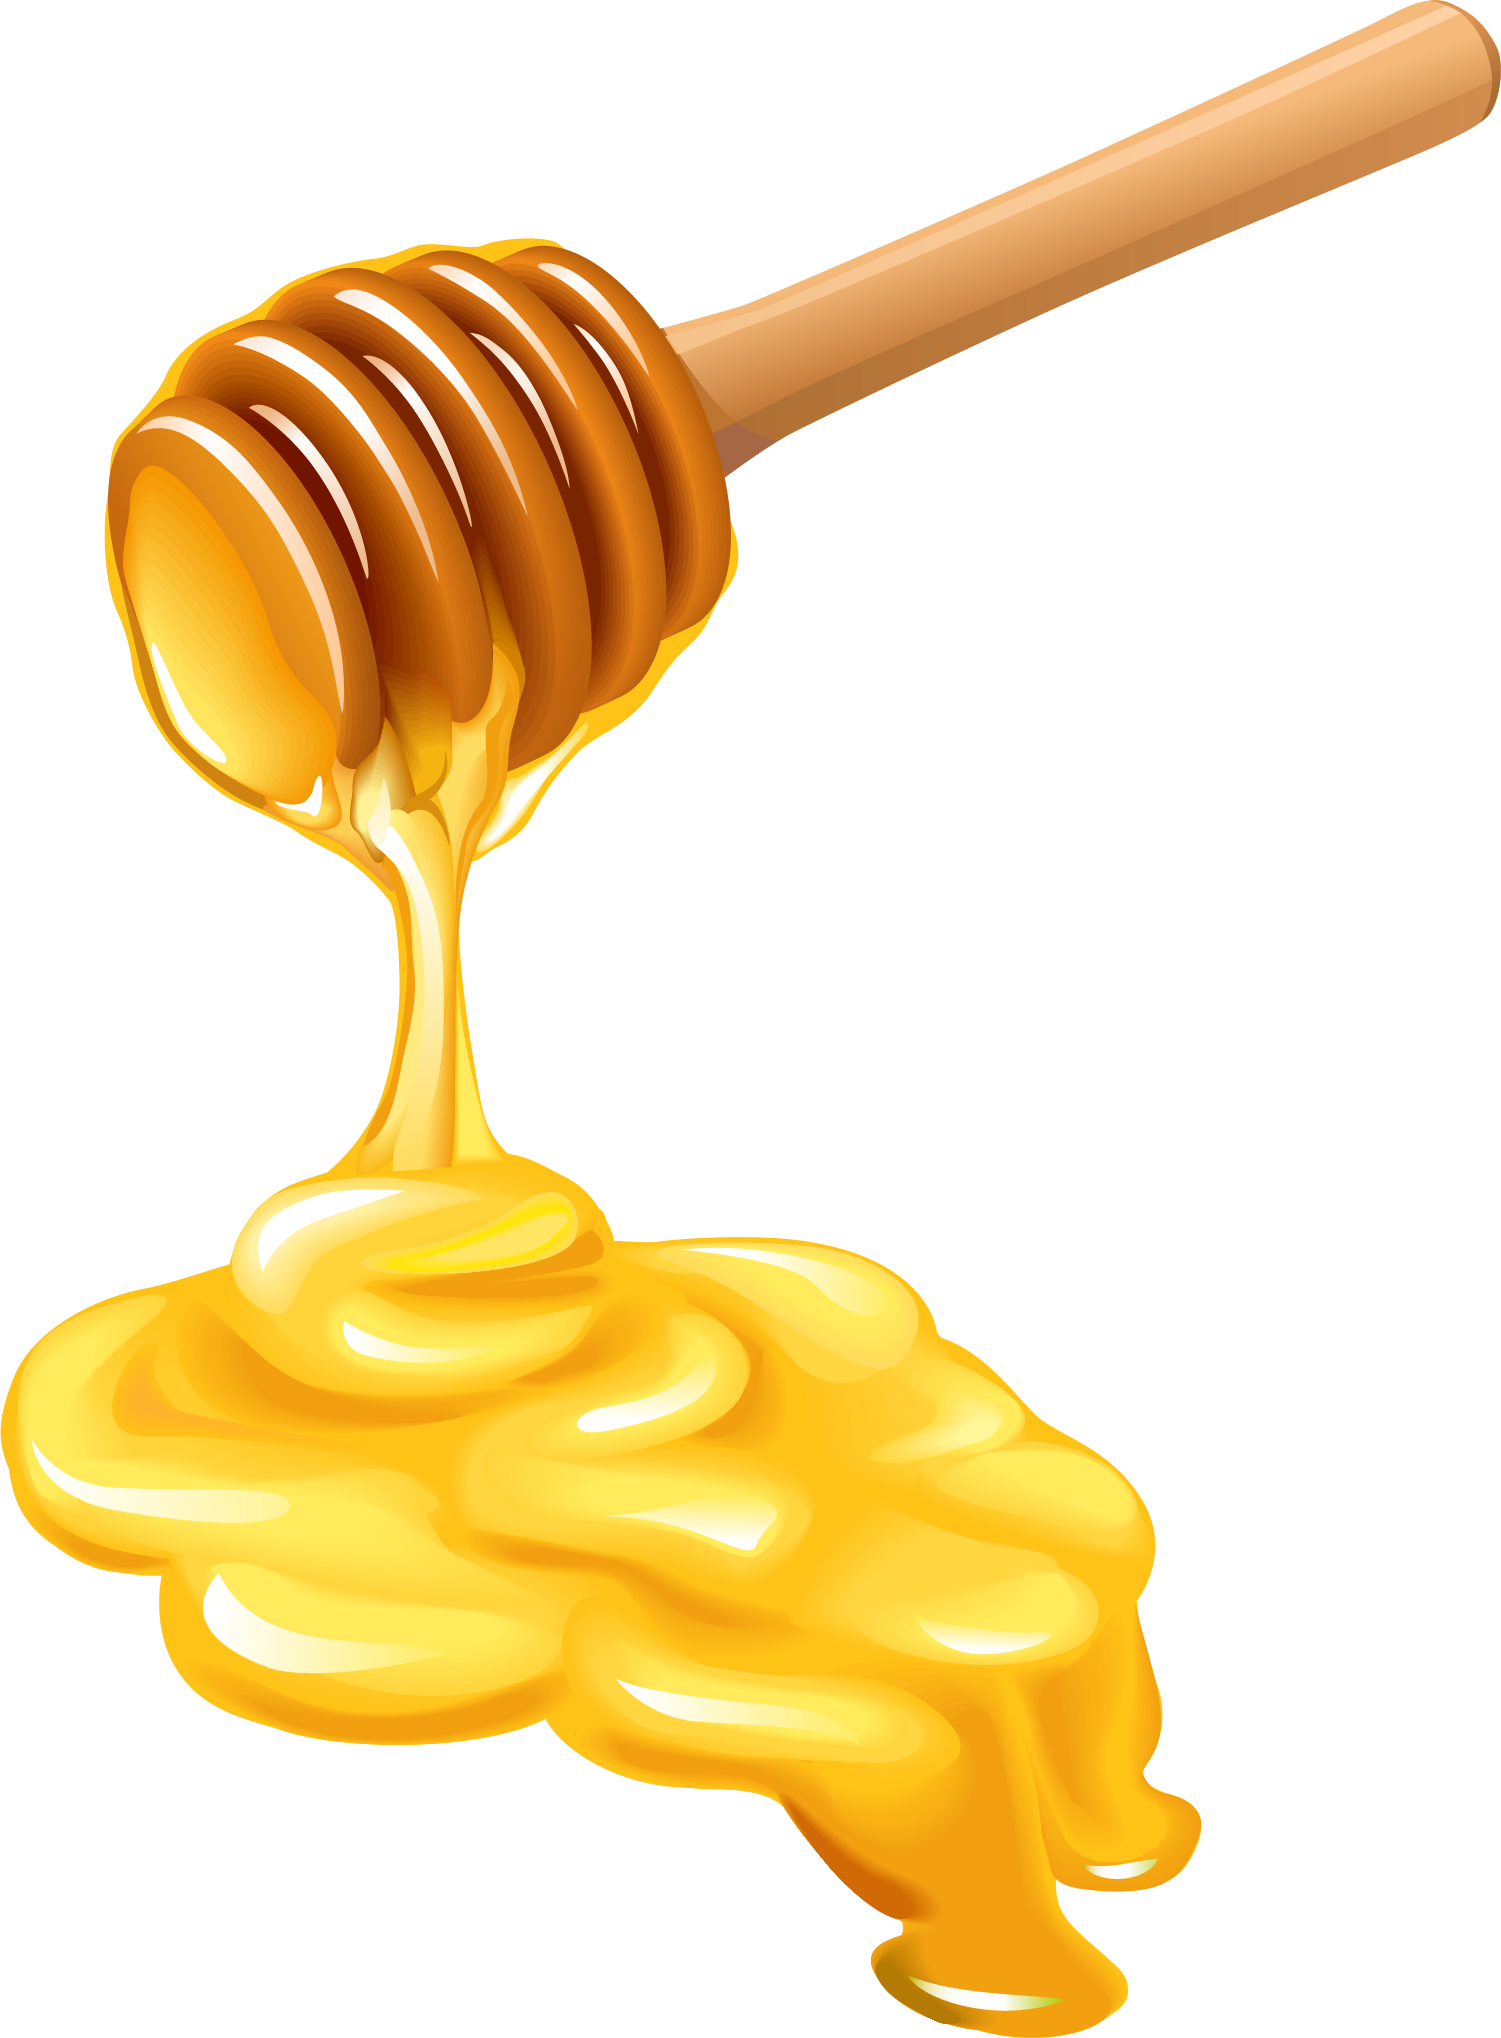 Honeycomb Clipart Stick  Honeycomb Stick Transparent Free For Download On Webstockreview 2020